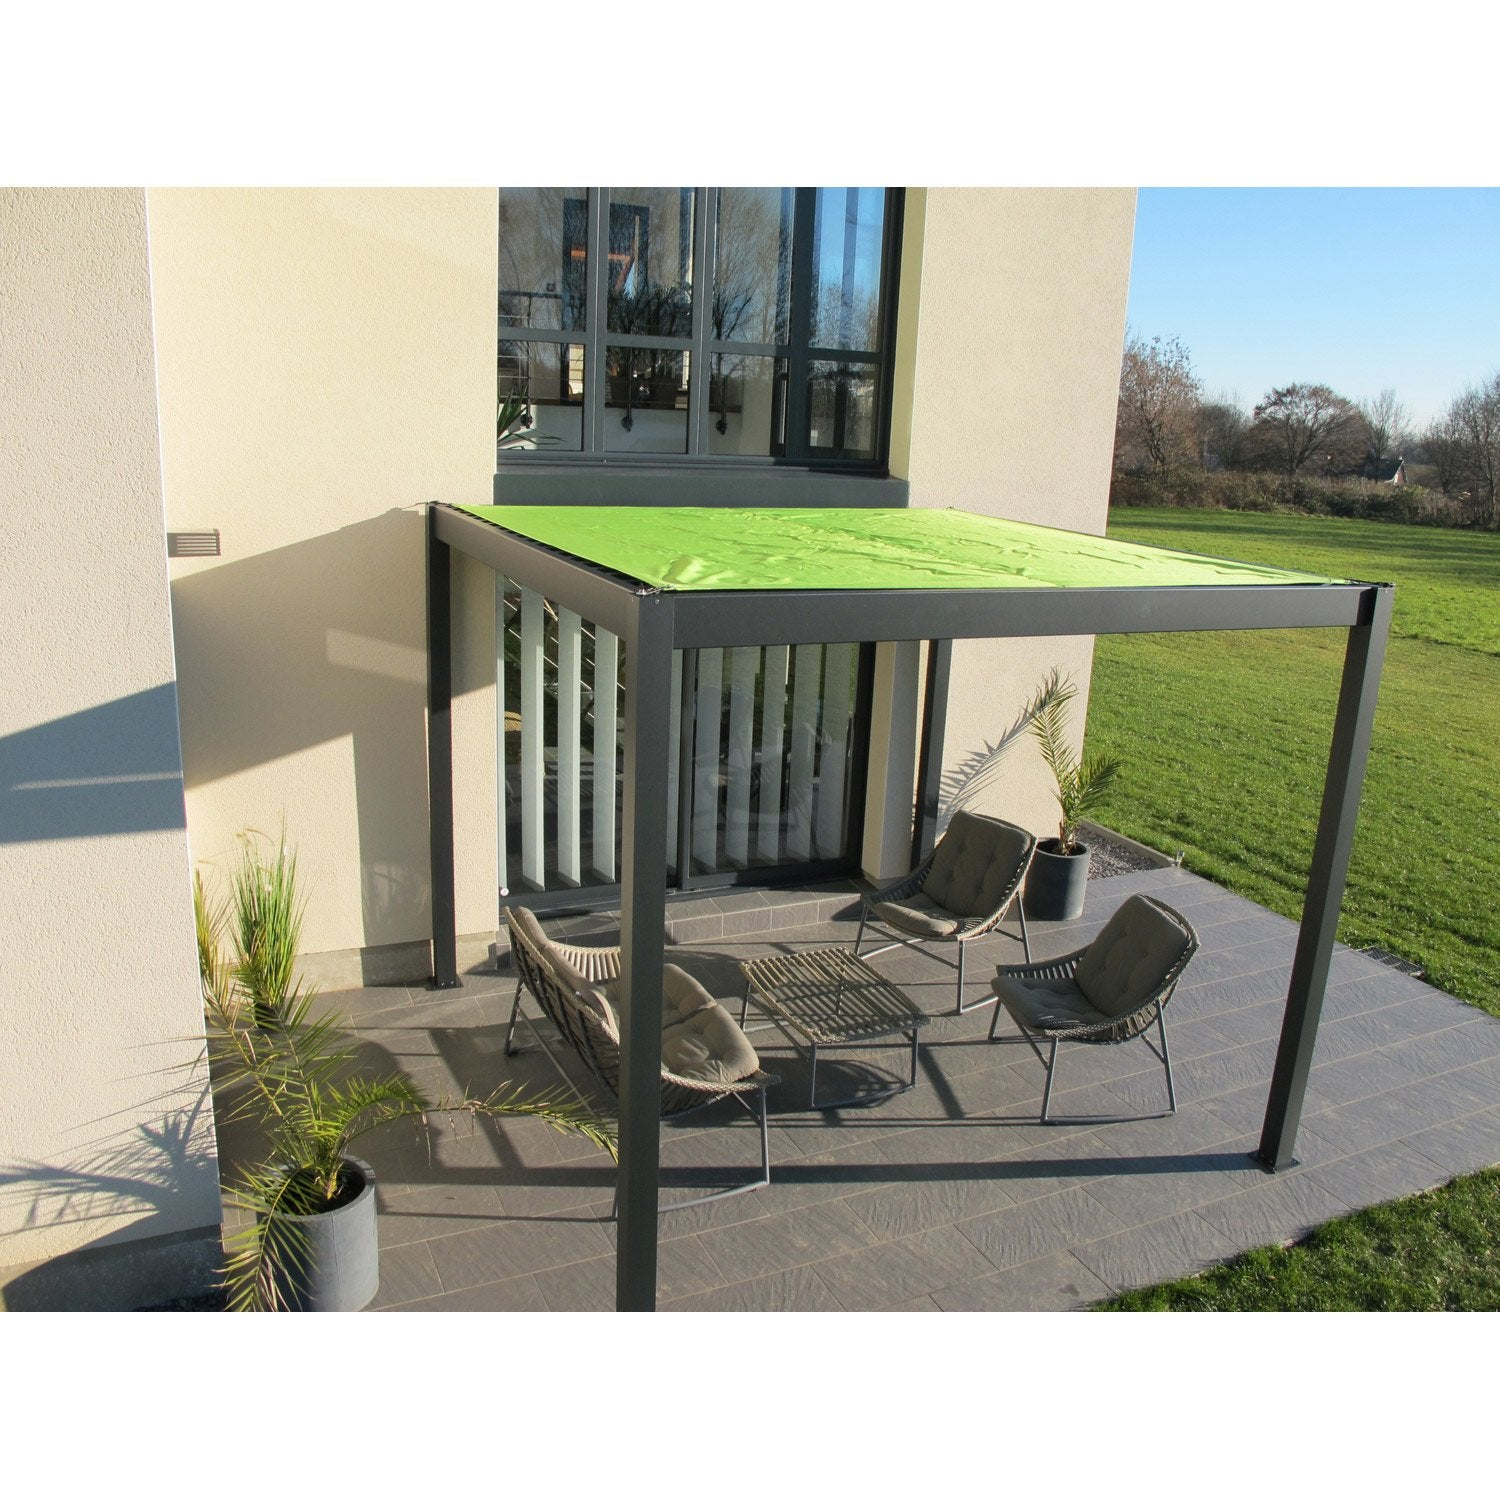 pergola autoportante ombrie aluminium gris anthracite 9 m leroy merlin. Black Bedroom Furniture Sets. Home Design Ideas